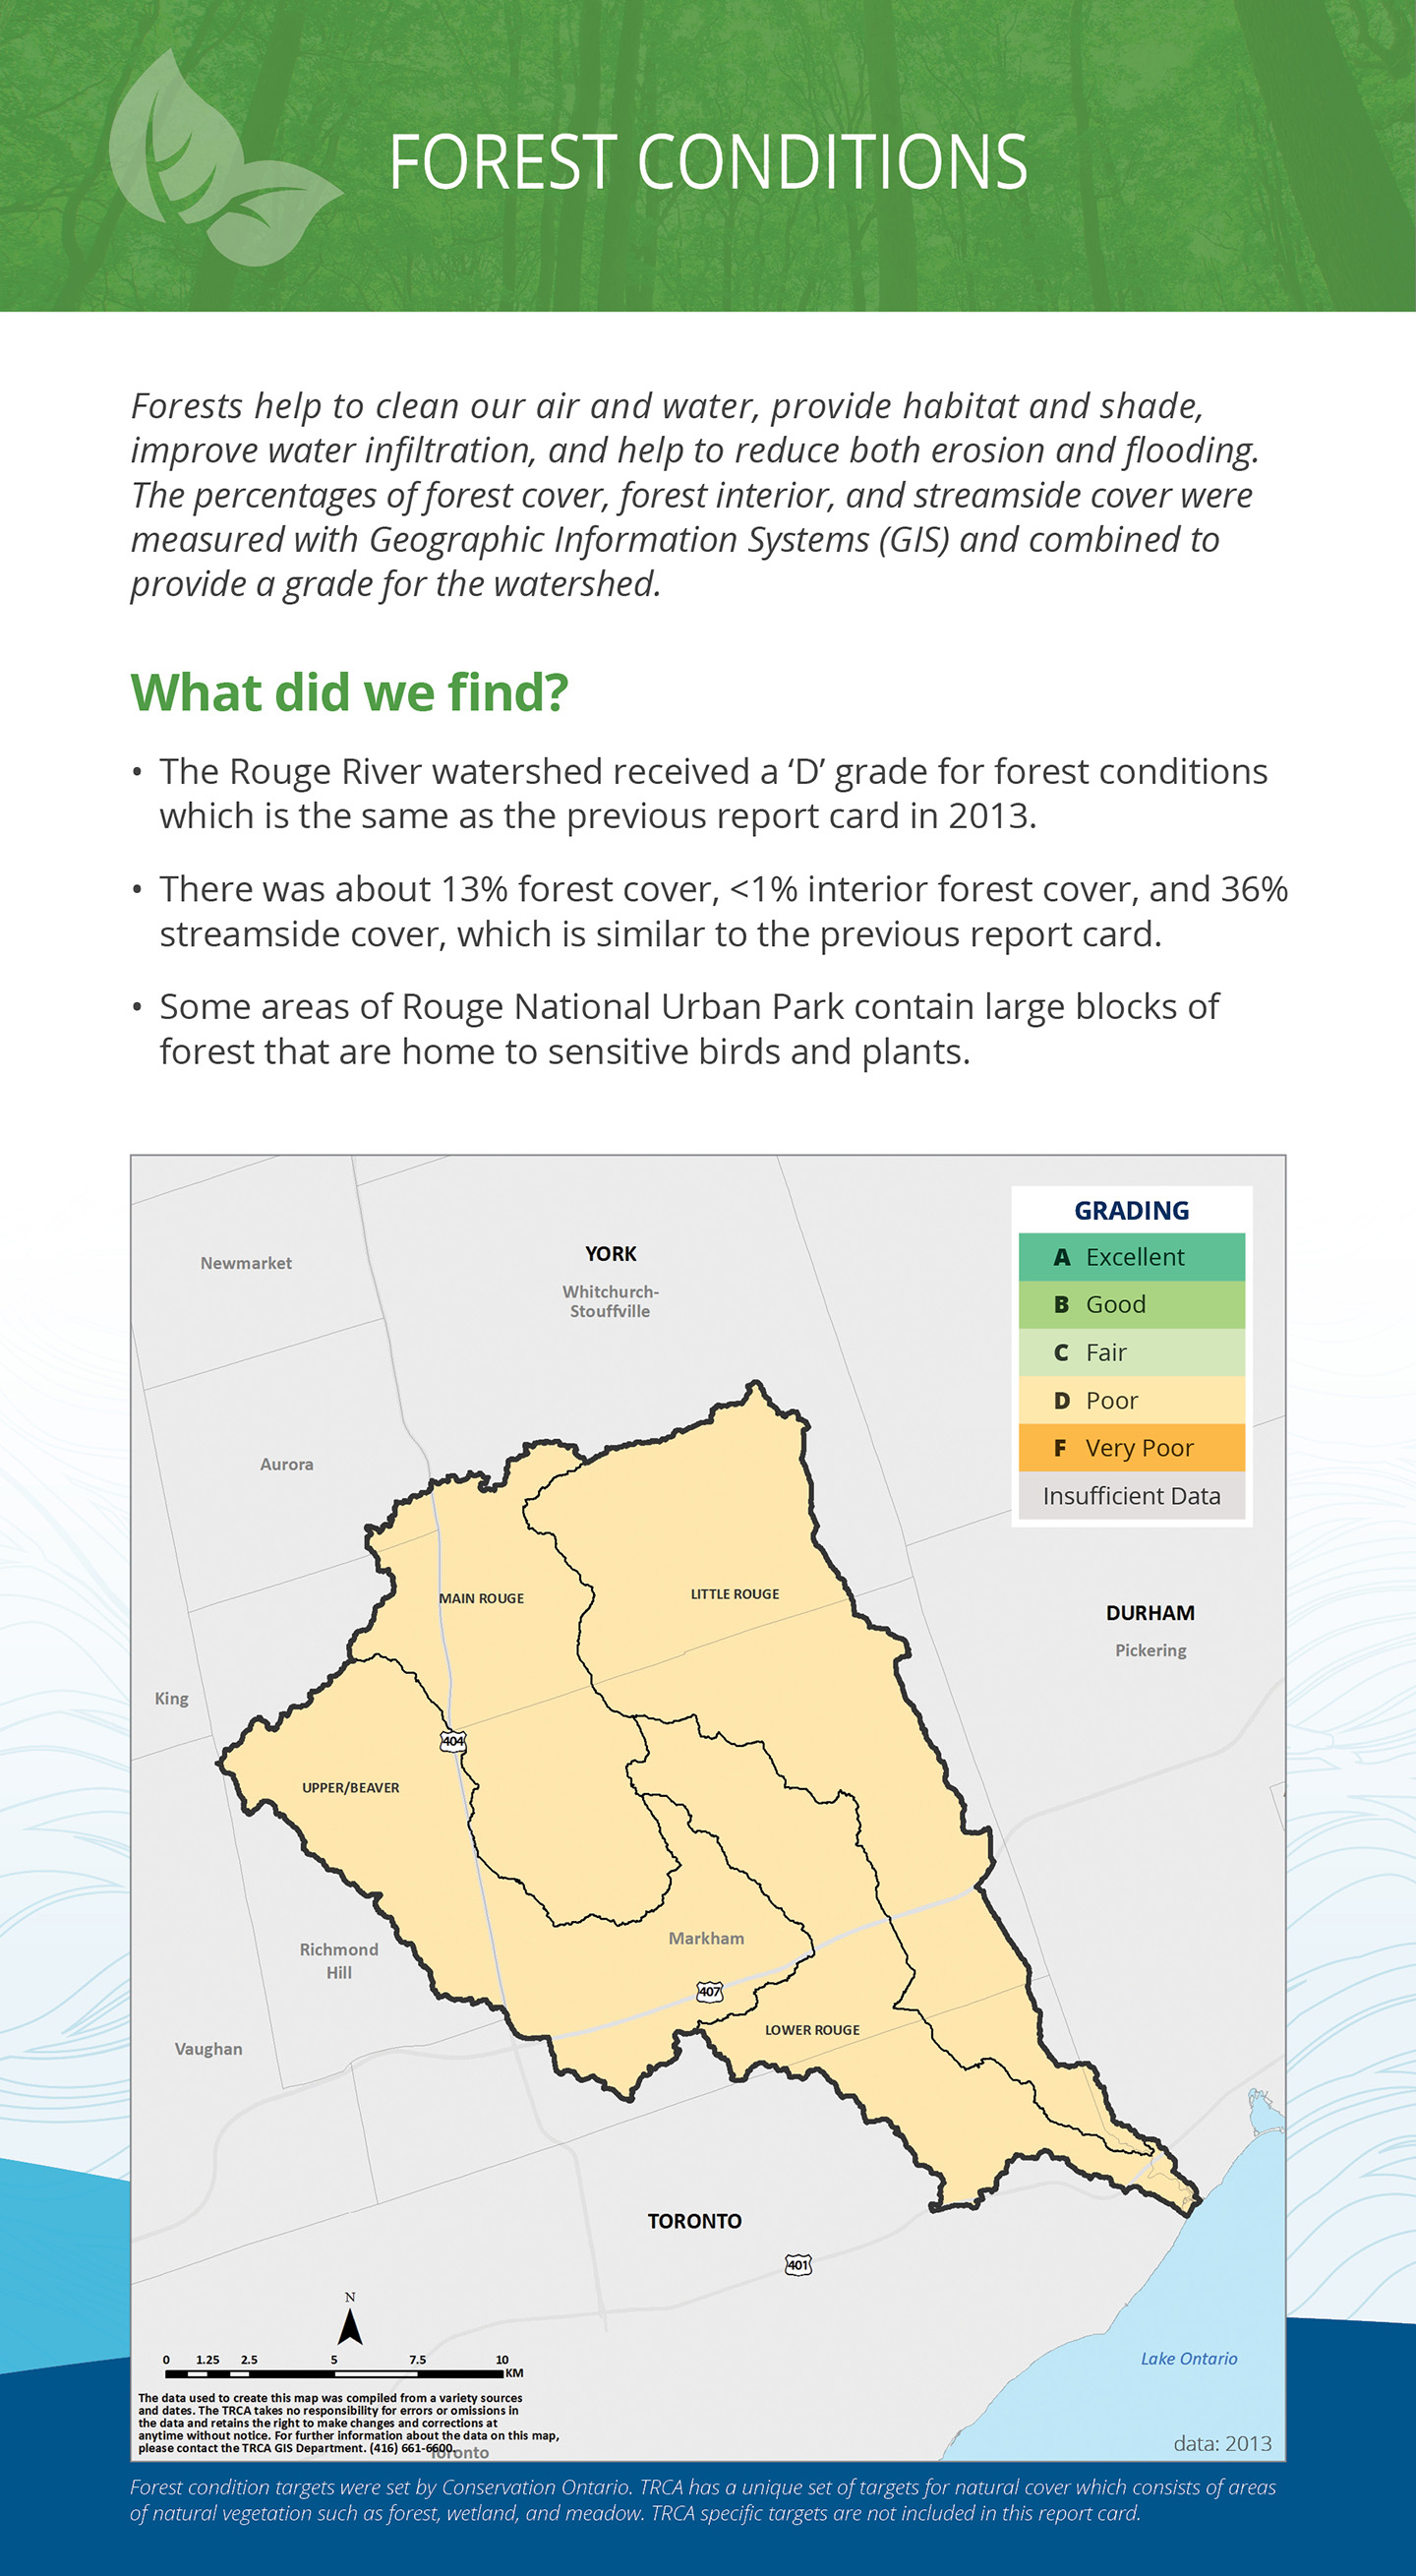 forest conditions panel of Rouge River watershed report card